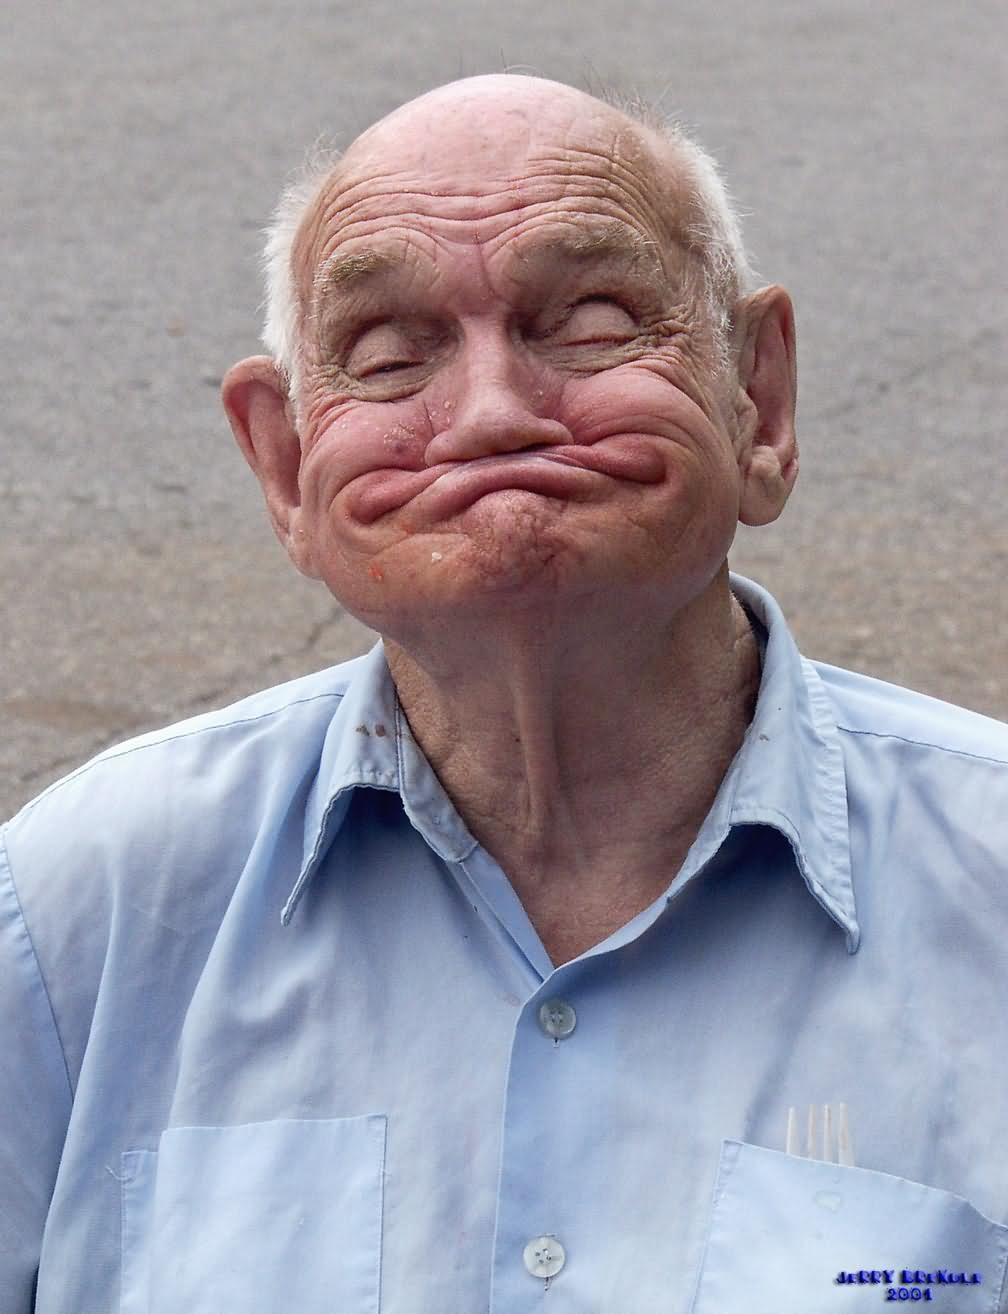 Pictures of funny old people